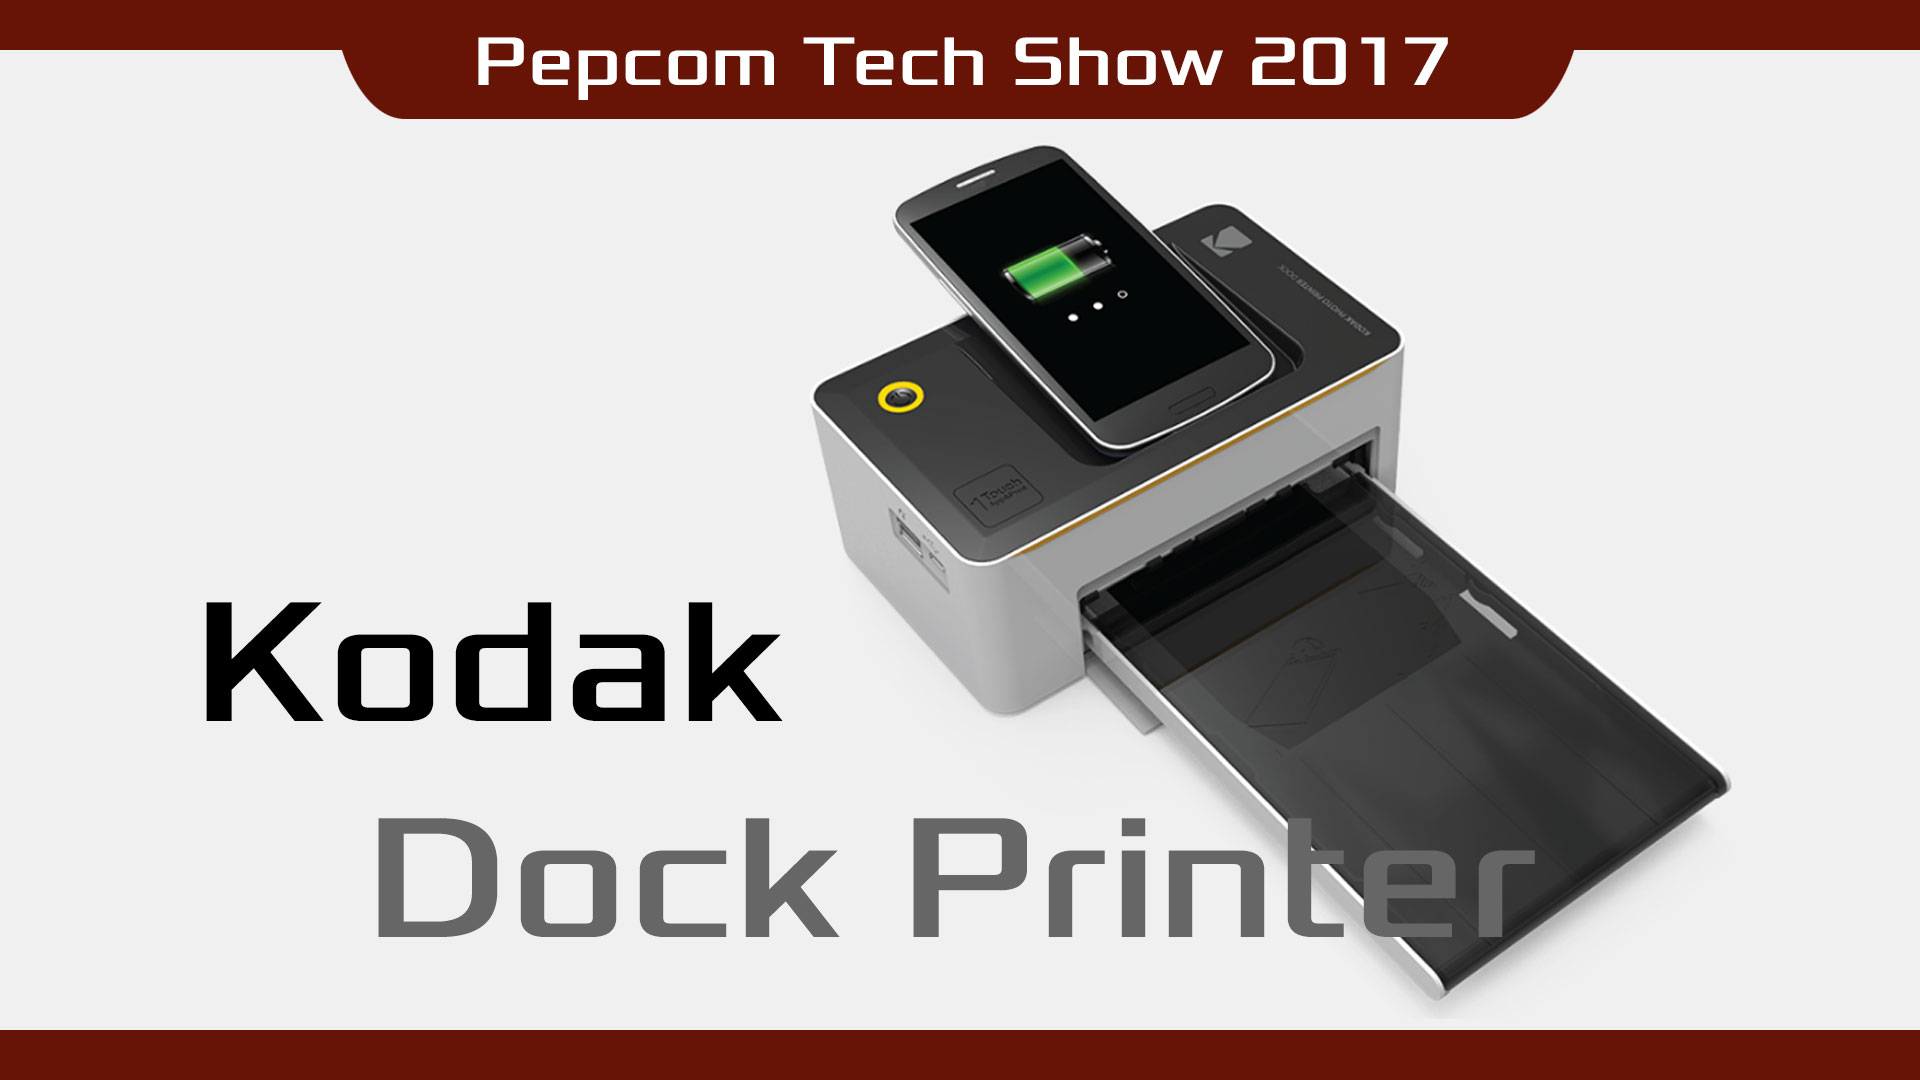 Kodak Dock Printer